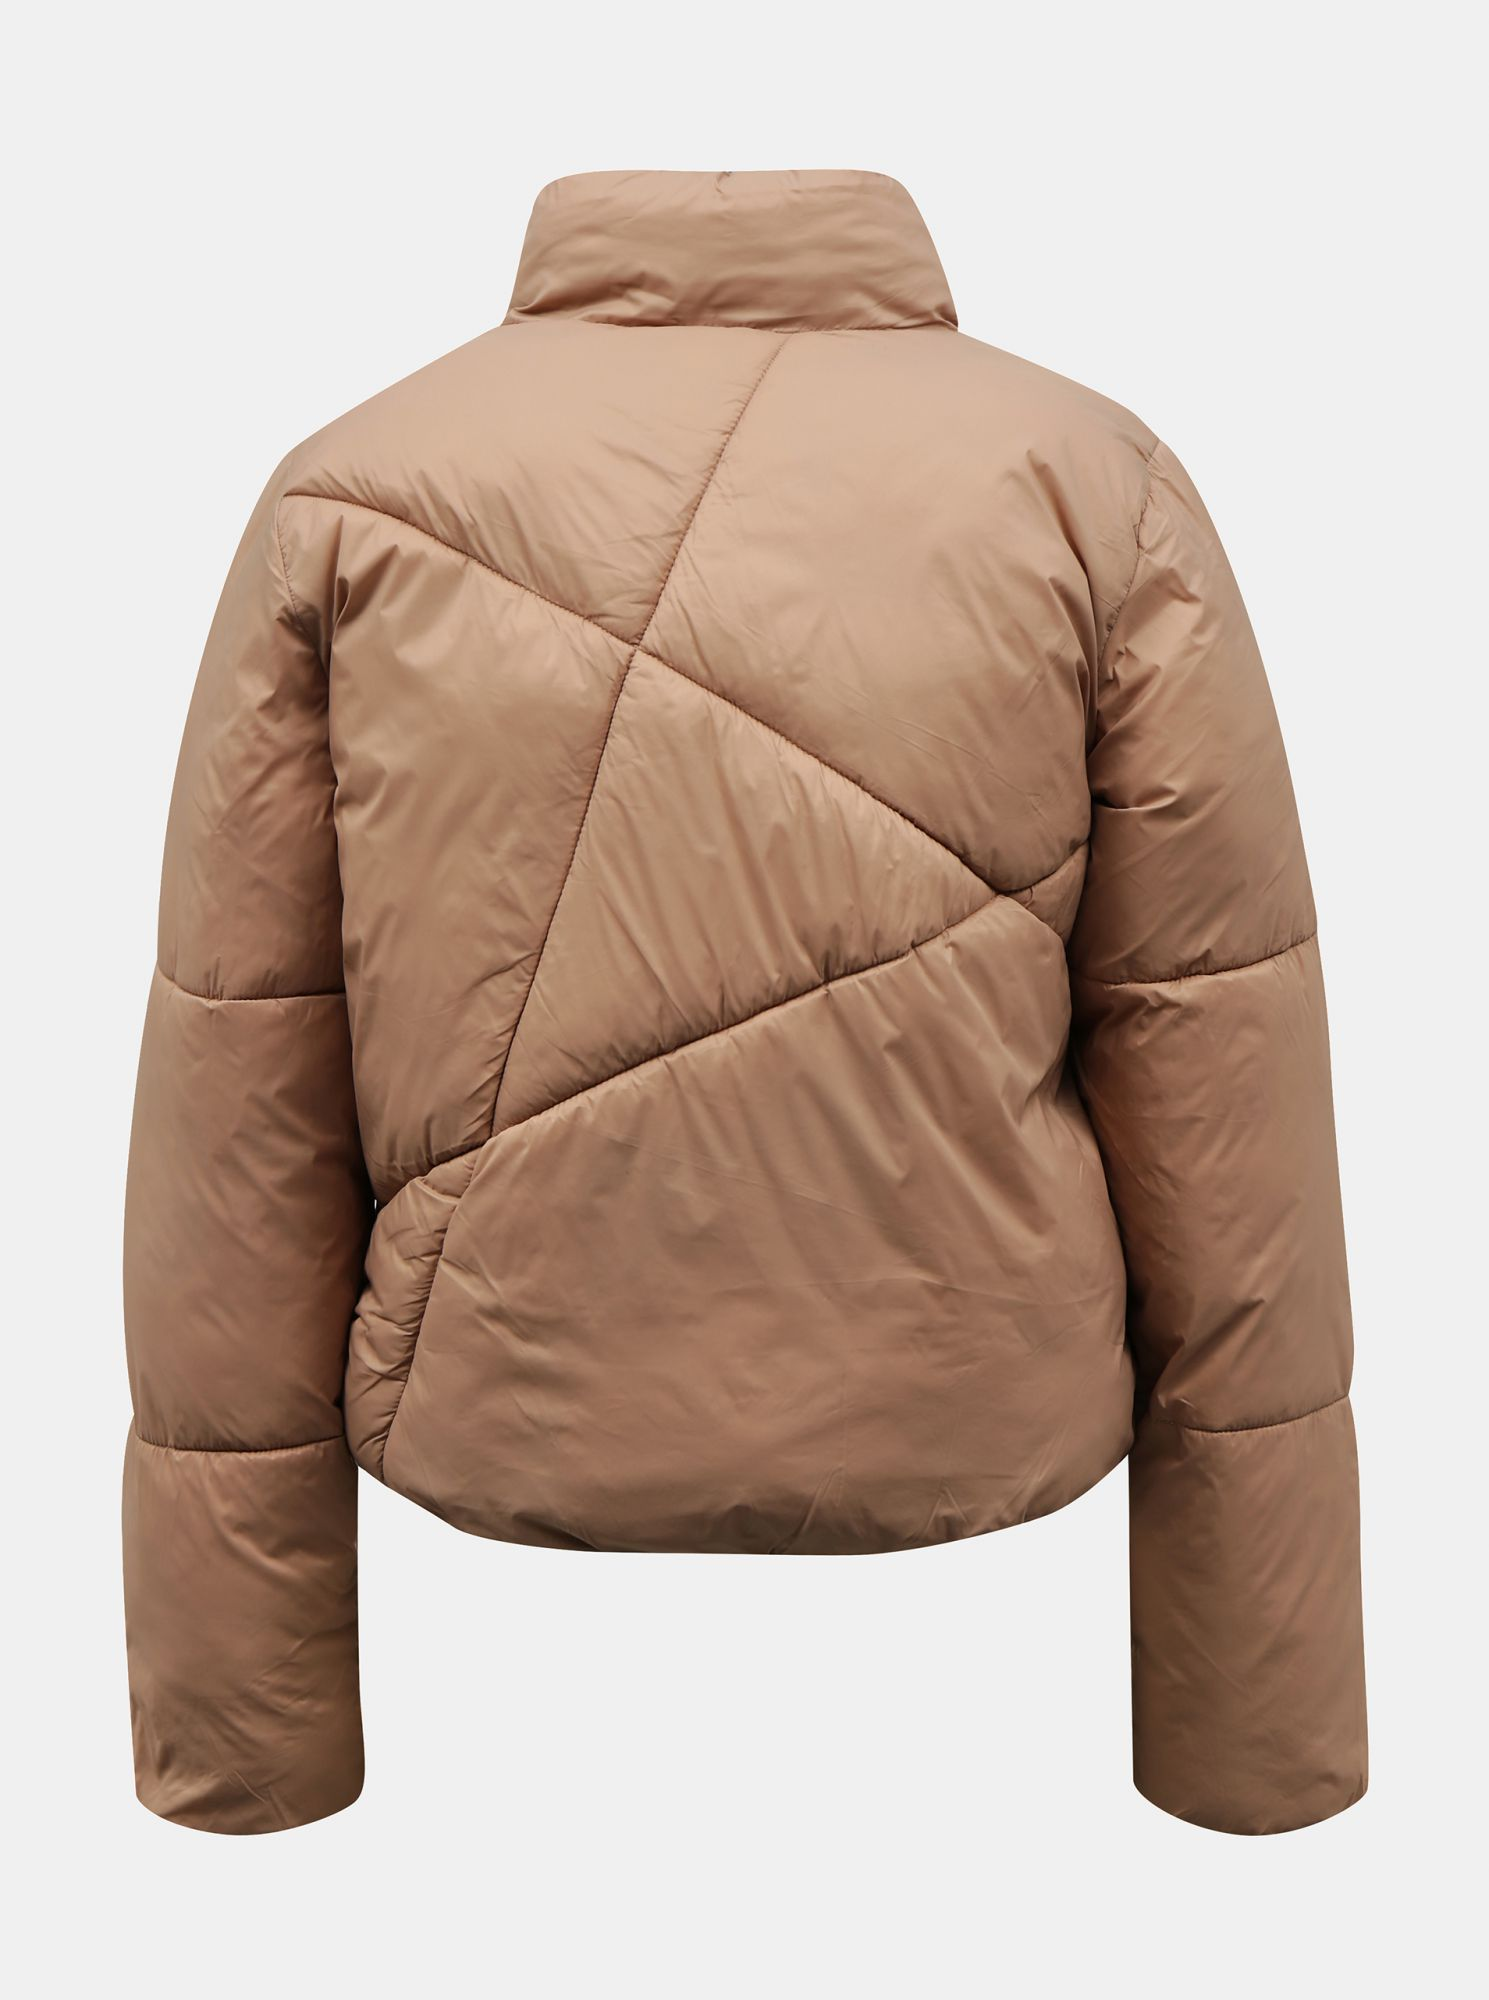 Giacca trapuntata invernale beige Jacqueline de Yong Timber